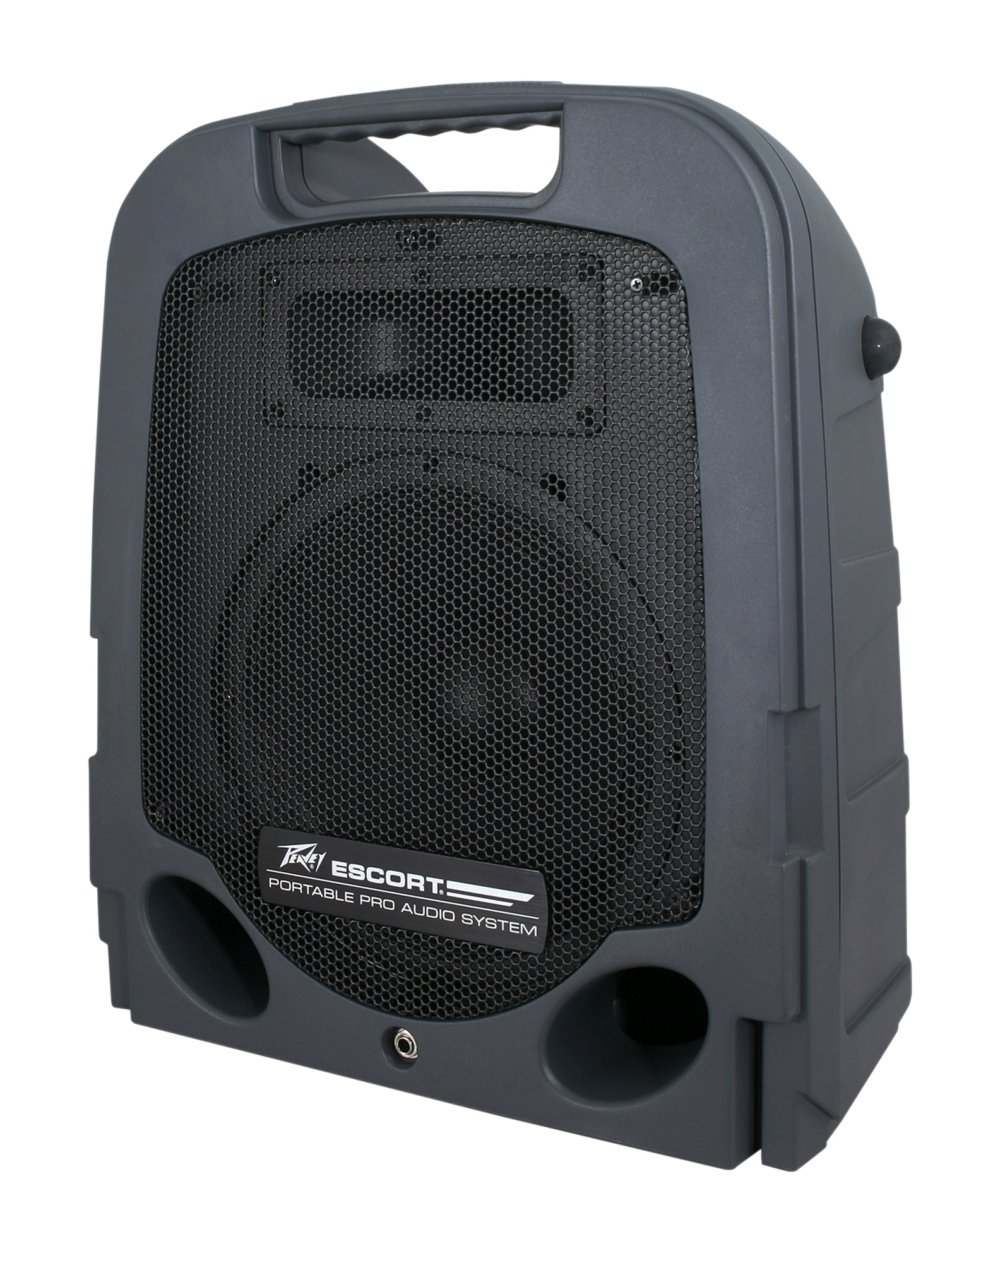 Amazon.com: Peavey Escort 6000 Portable PA System 600 Watts: Musical Instruments